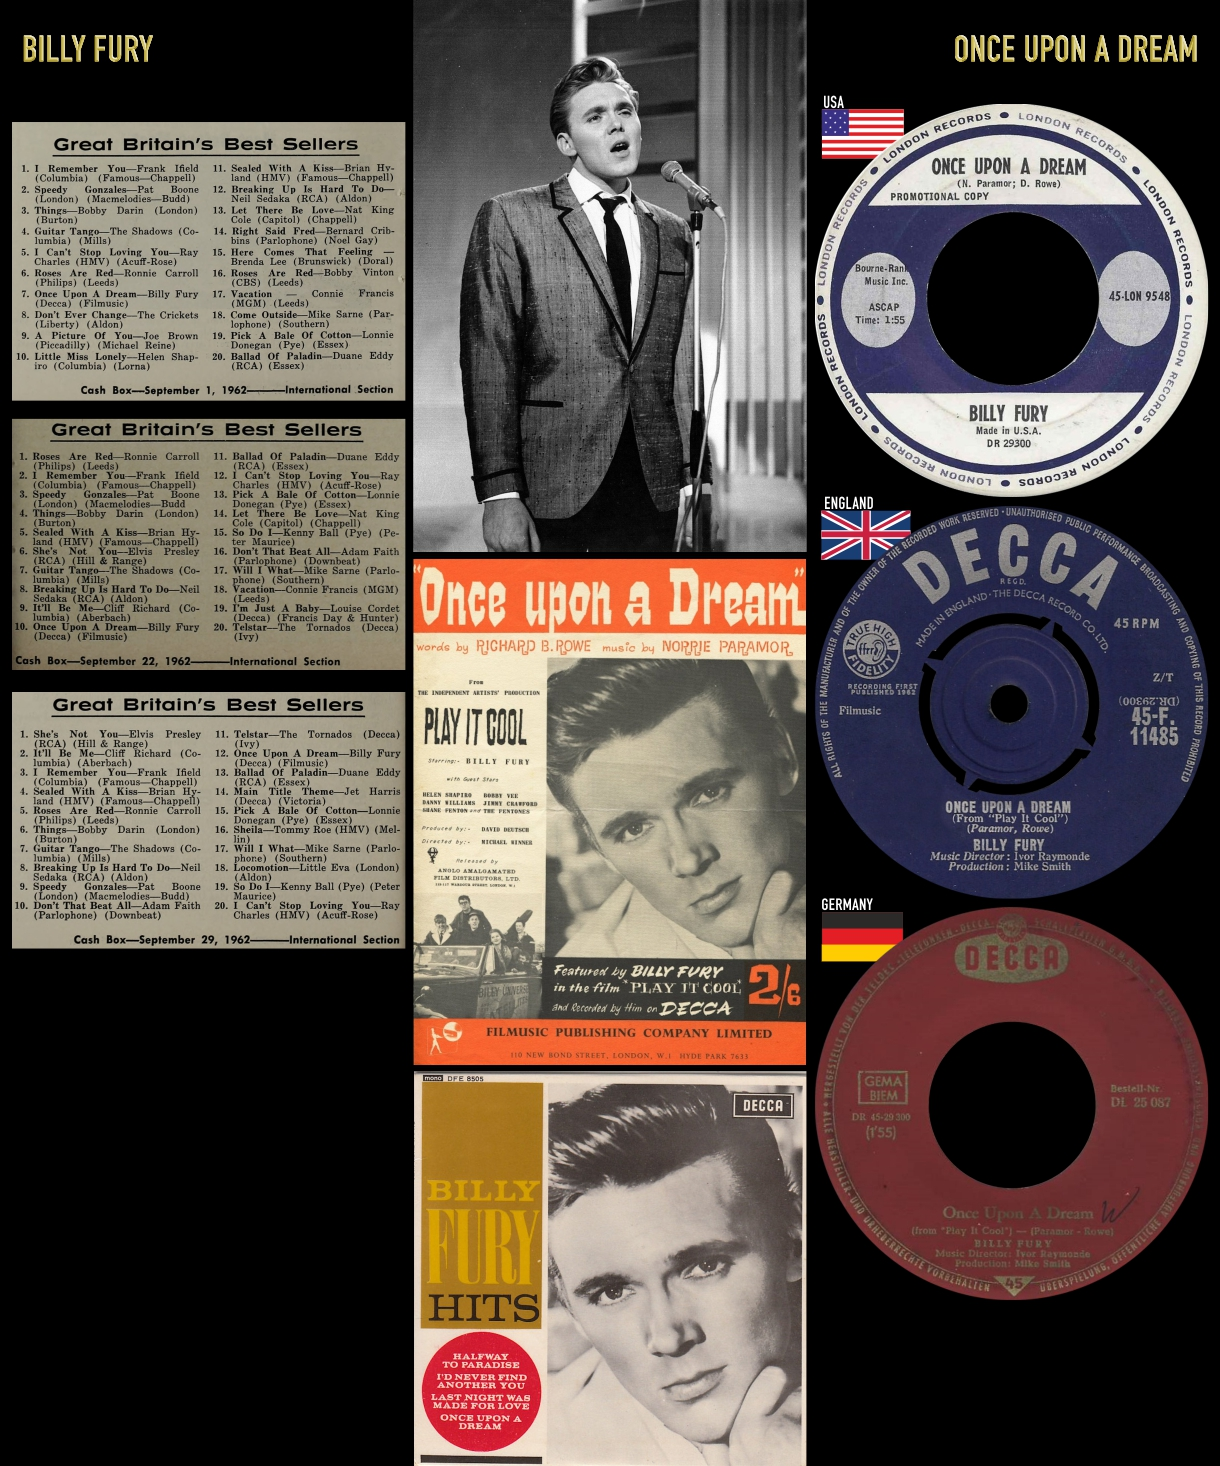 620714_Billy Fury_Once Upon A Dram_new